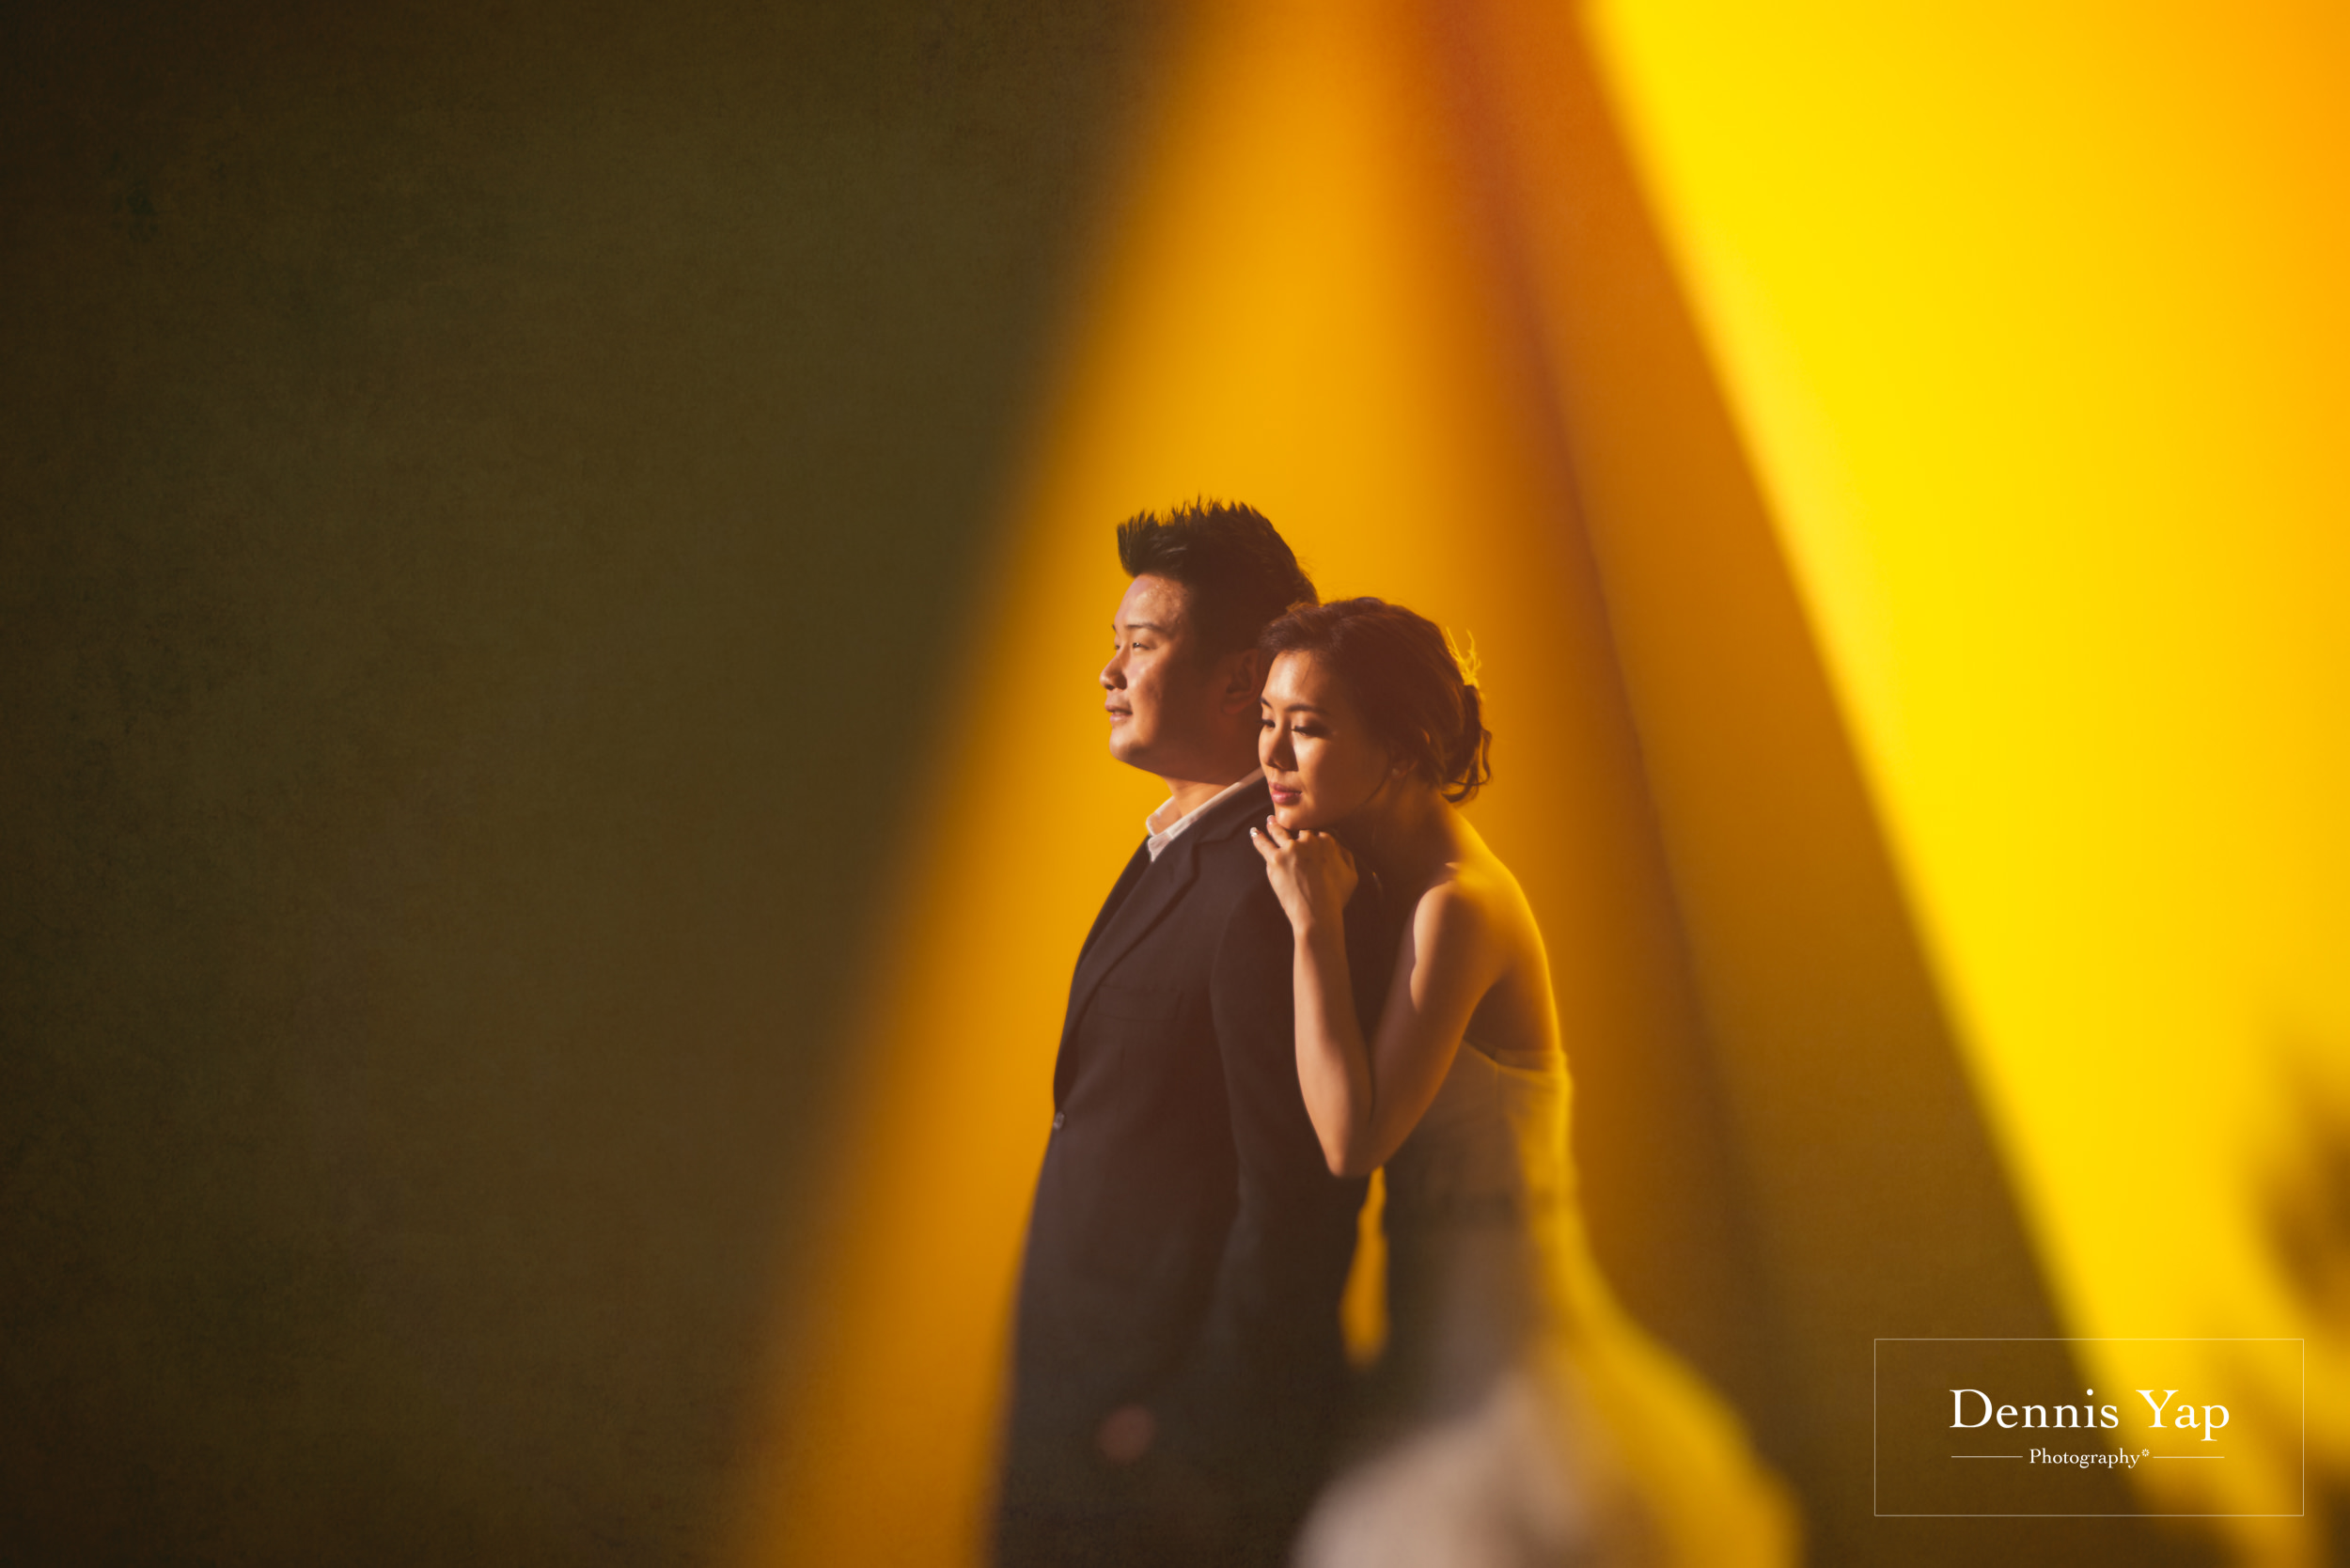 johnson joanne prewedding melbourne dennis yap photography fine art portrait paris dennis yap photography-23.jpg